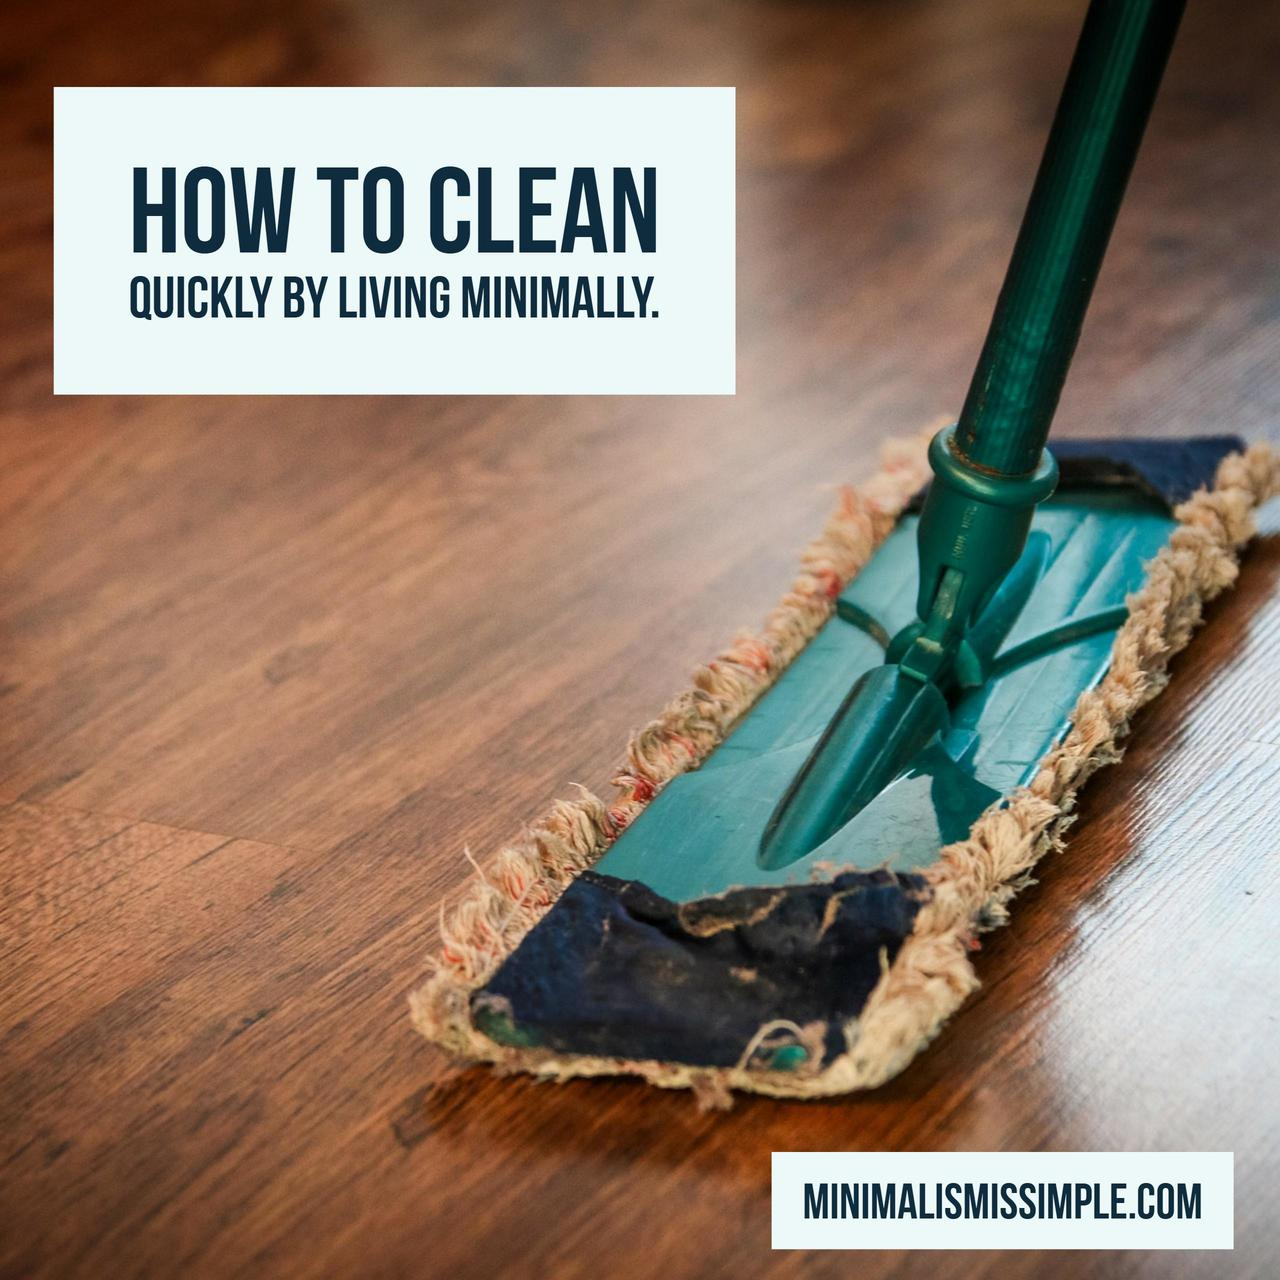 How to clean quickly by living minimally minimalismissimple.com